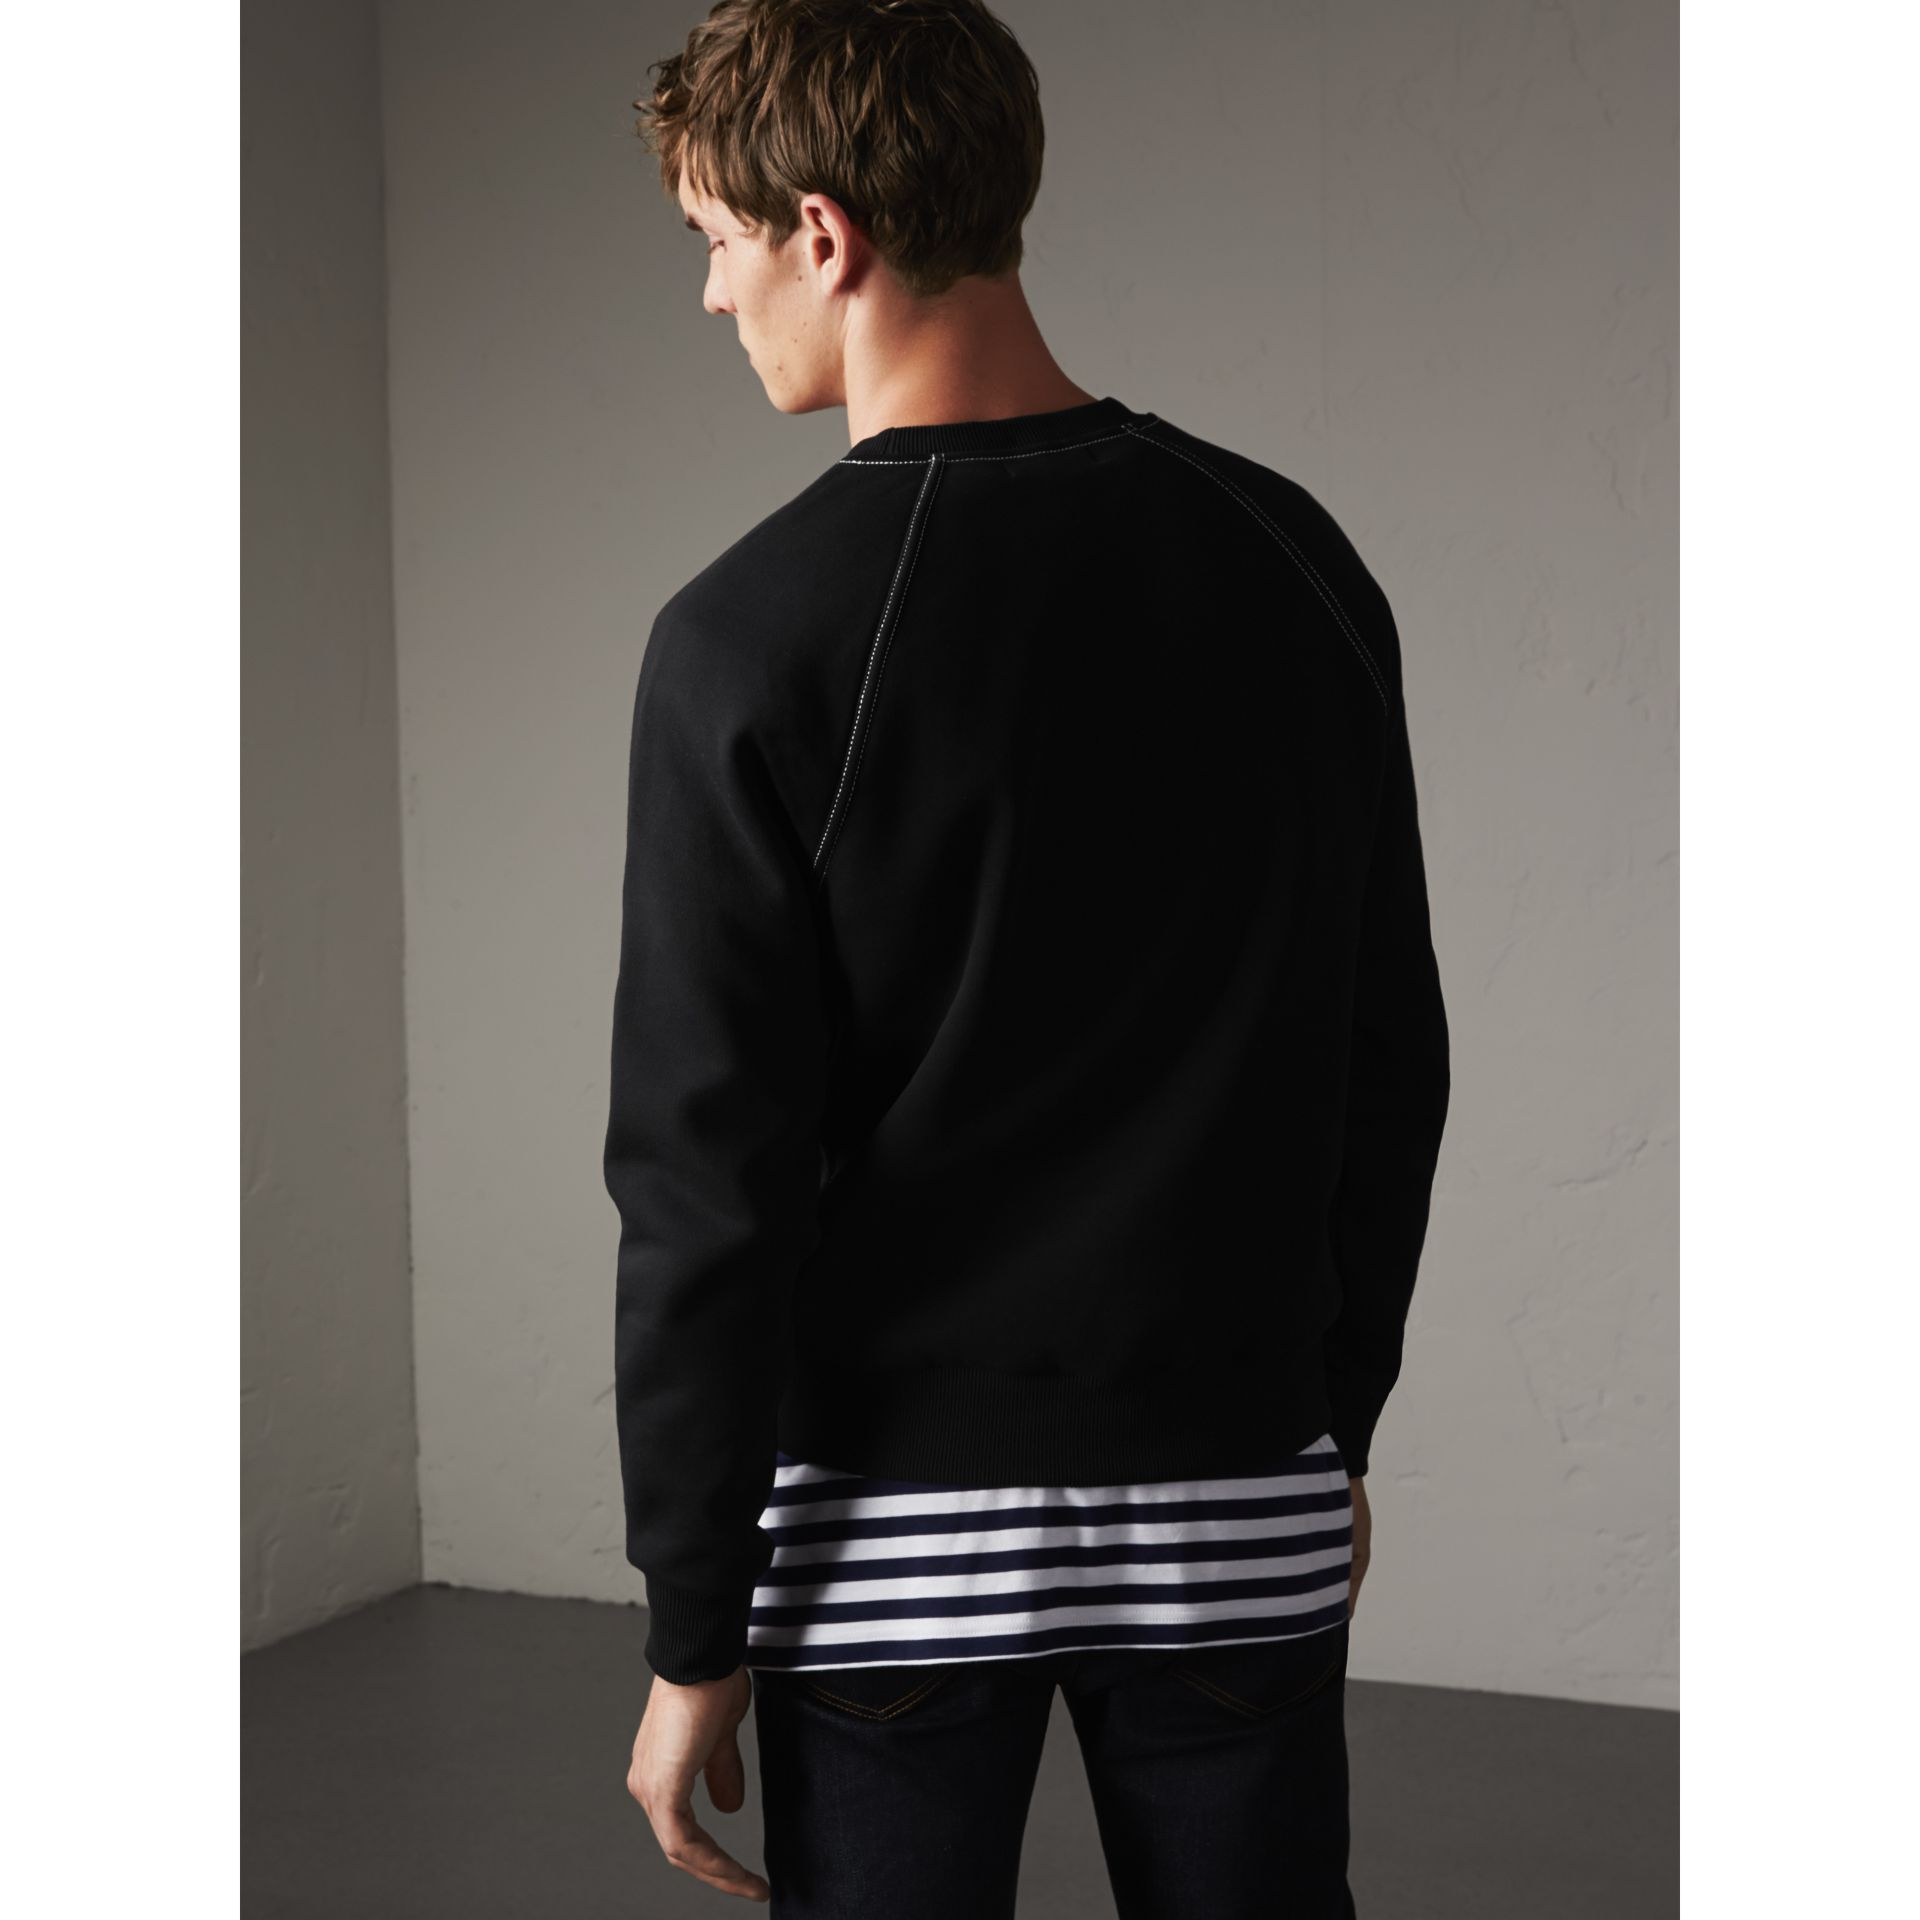 Embroidered Jersey Sweatshirt in Black / White - Men | Burberry Hong Kong - gallery image 3